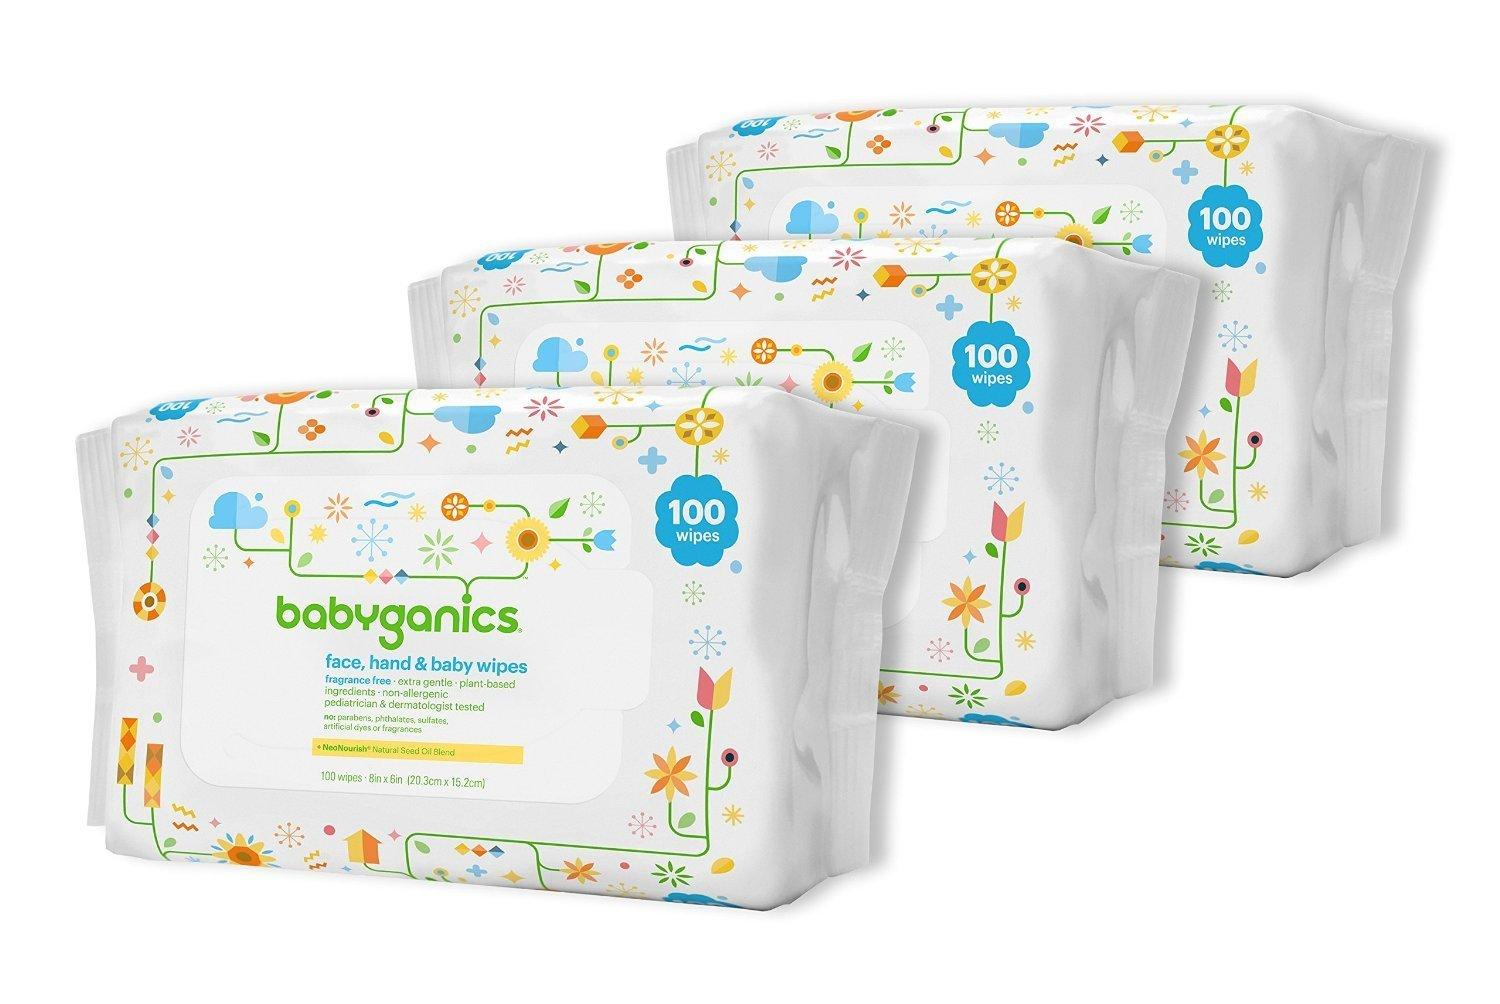 Babyganics Face, Hand & Baby Wipes, Fragrance Free, 300 Count (Contains Three 100-Count Packs)